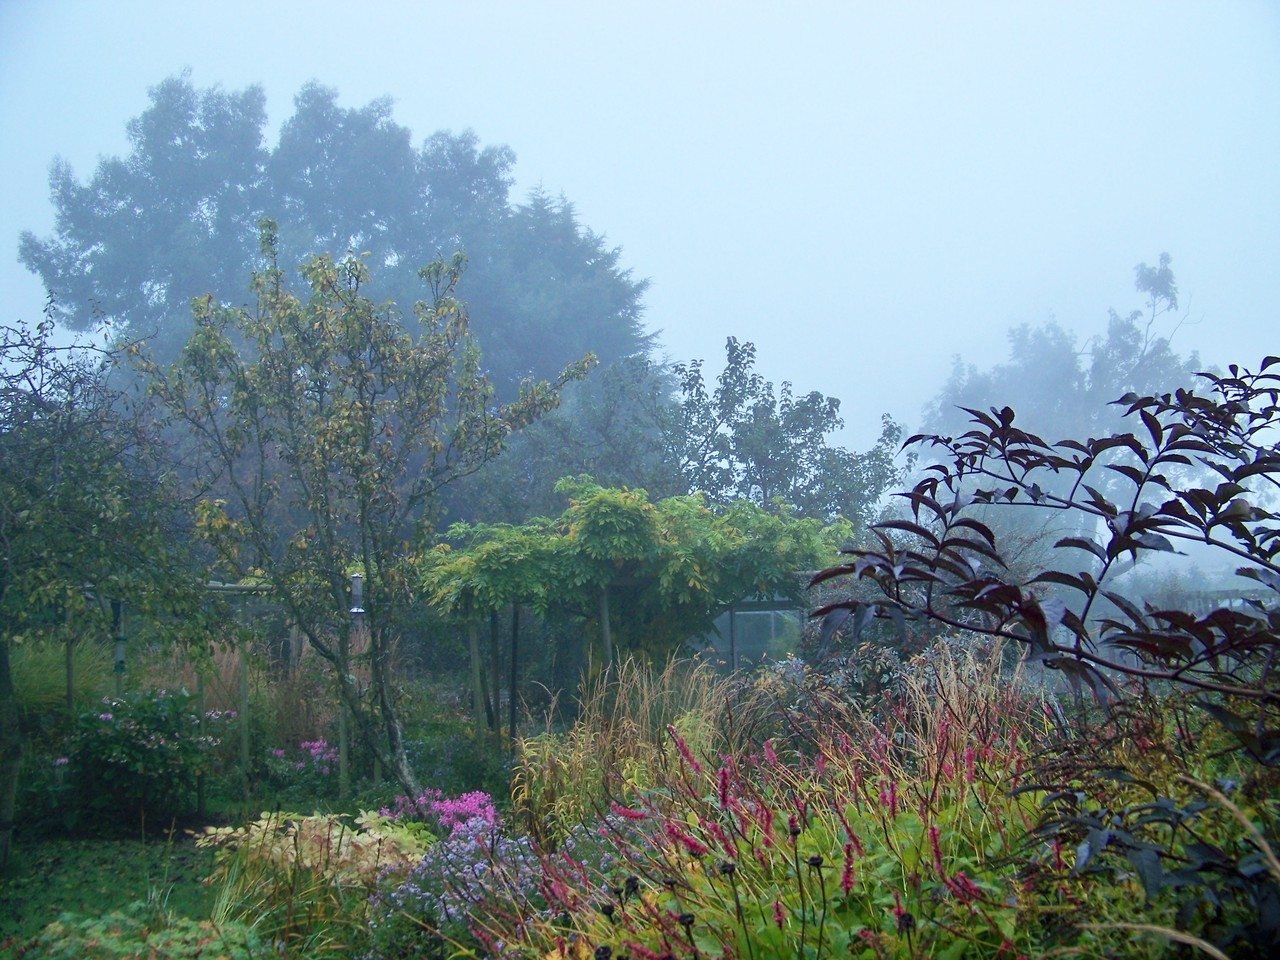 I have been drawing at the beach in the fog and clearing out storage at the studio today. The garden has looked good under fog all day.